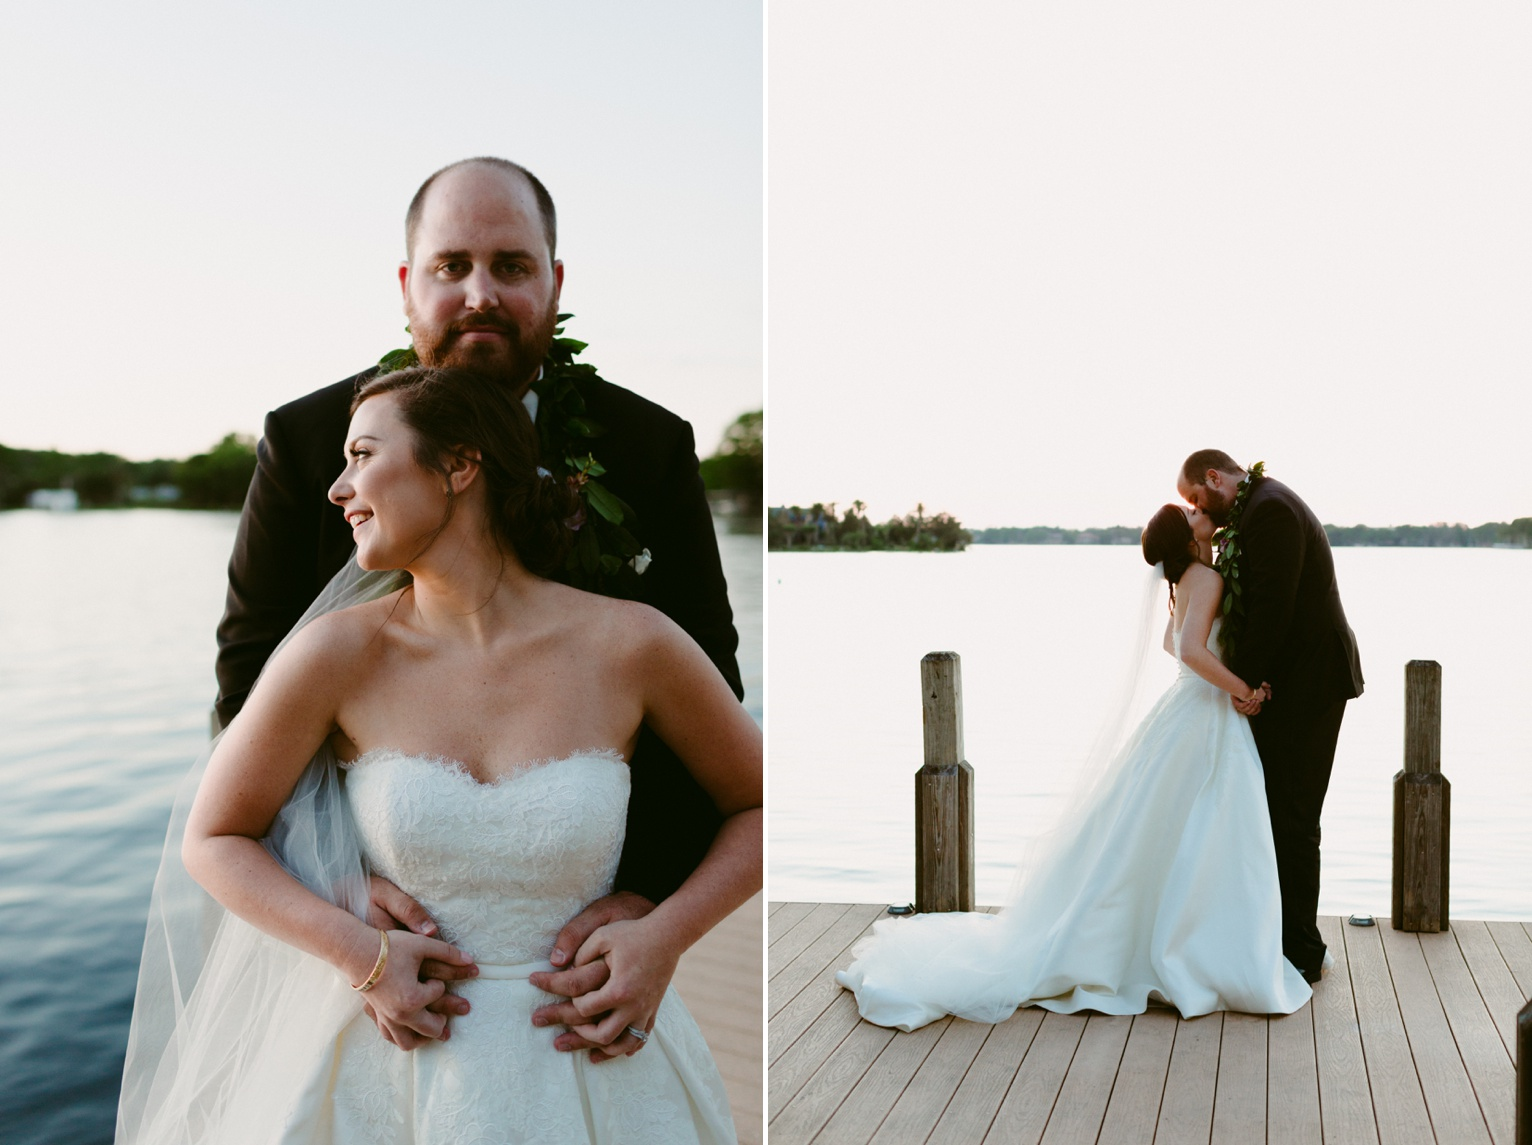 Dreamtownco.com_blog_David&Kiana_Wedding_0111.jpg